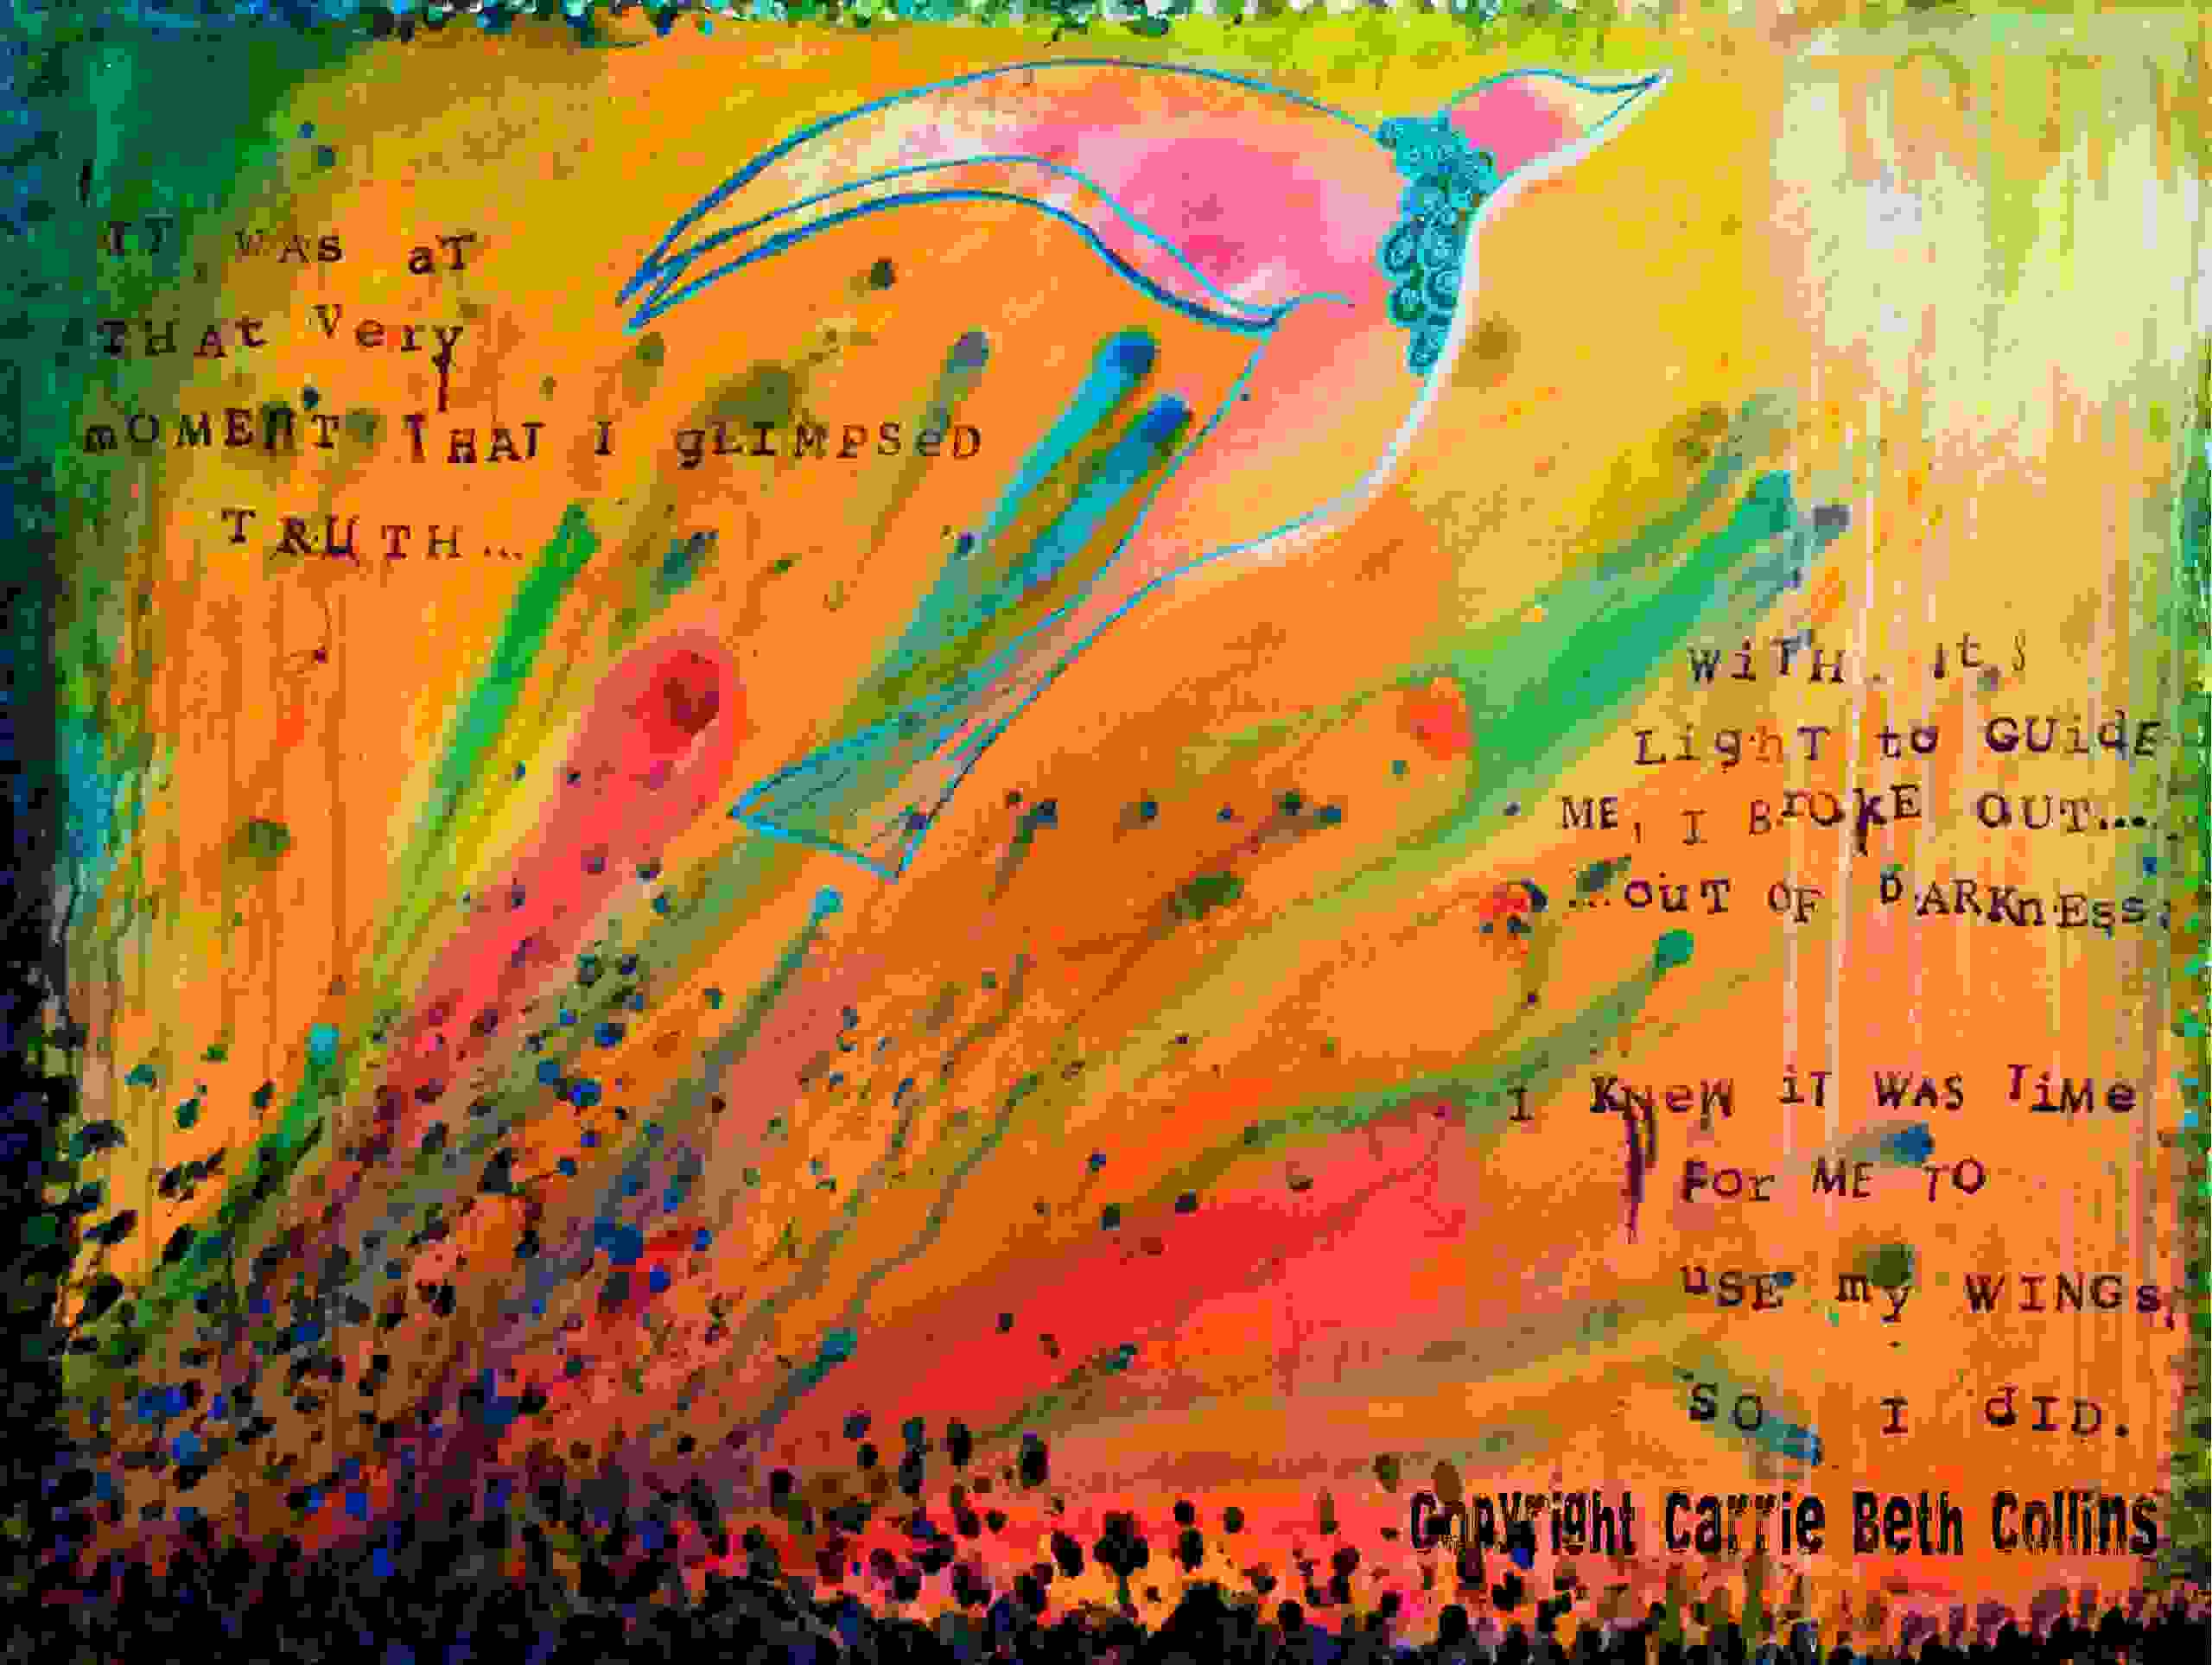 Journal writing, bird, flying, colorful, contemporary art, Carrie Beth Collins, artist